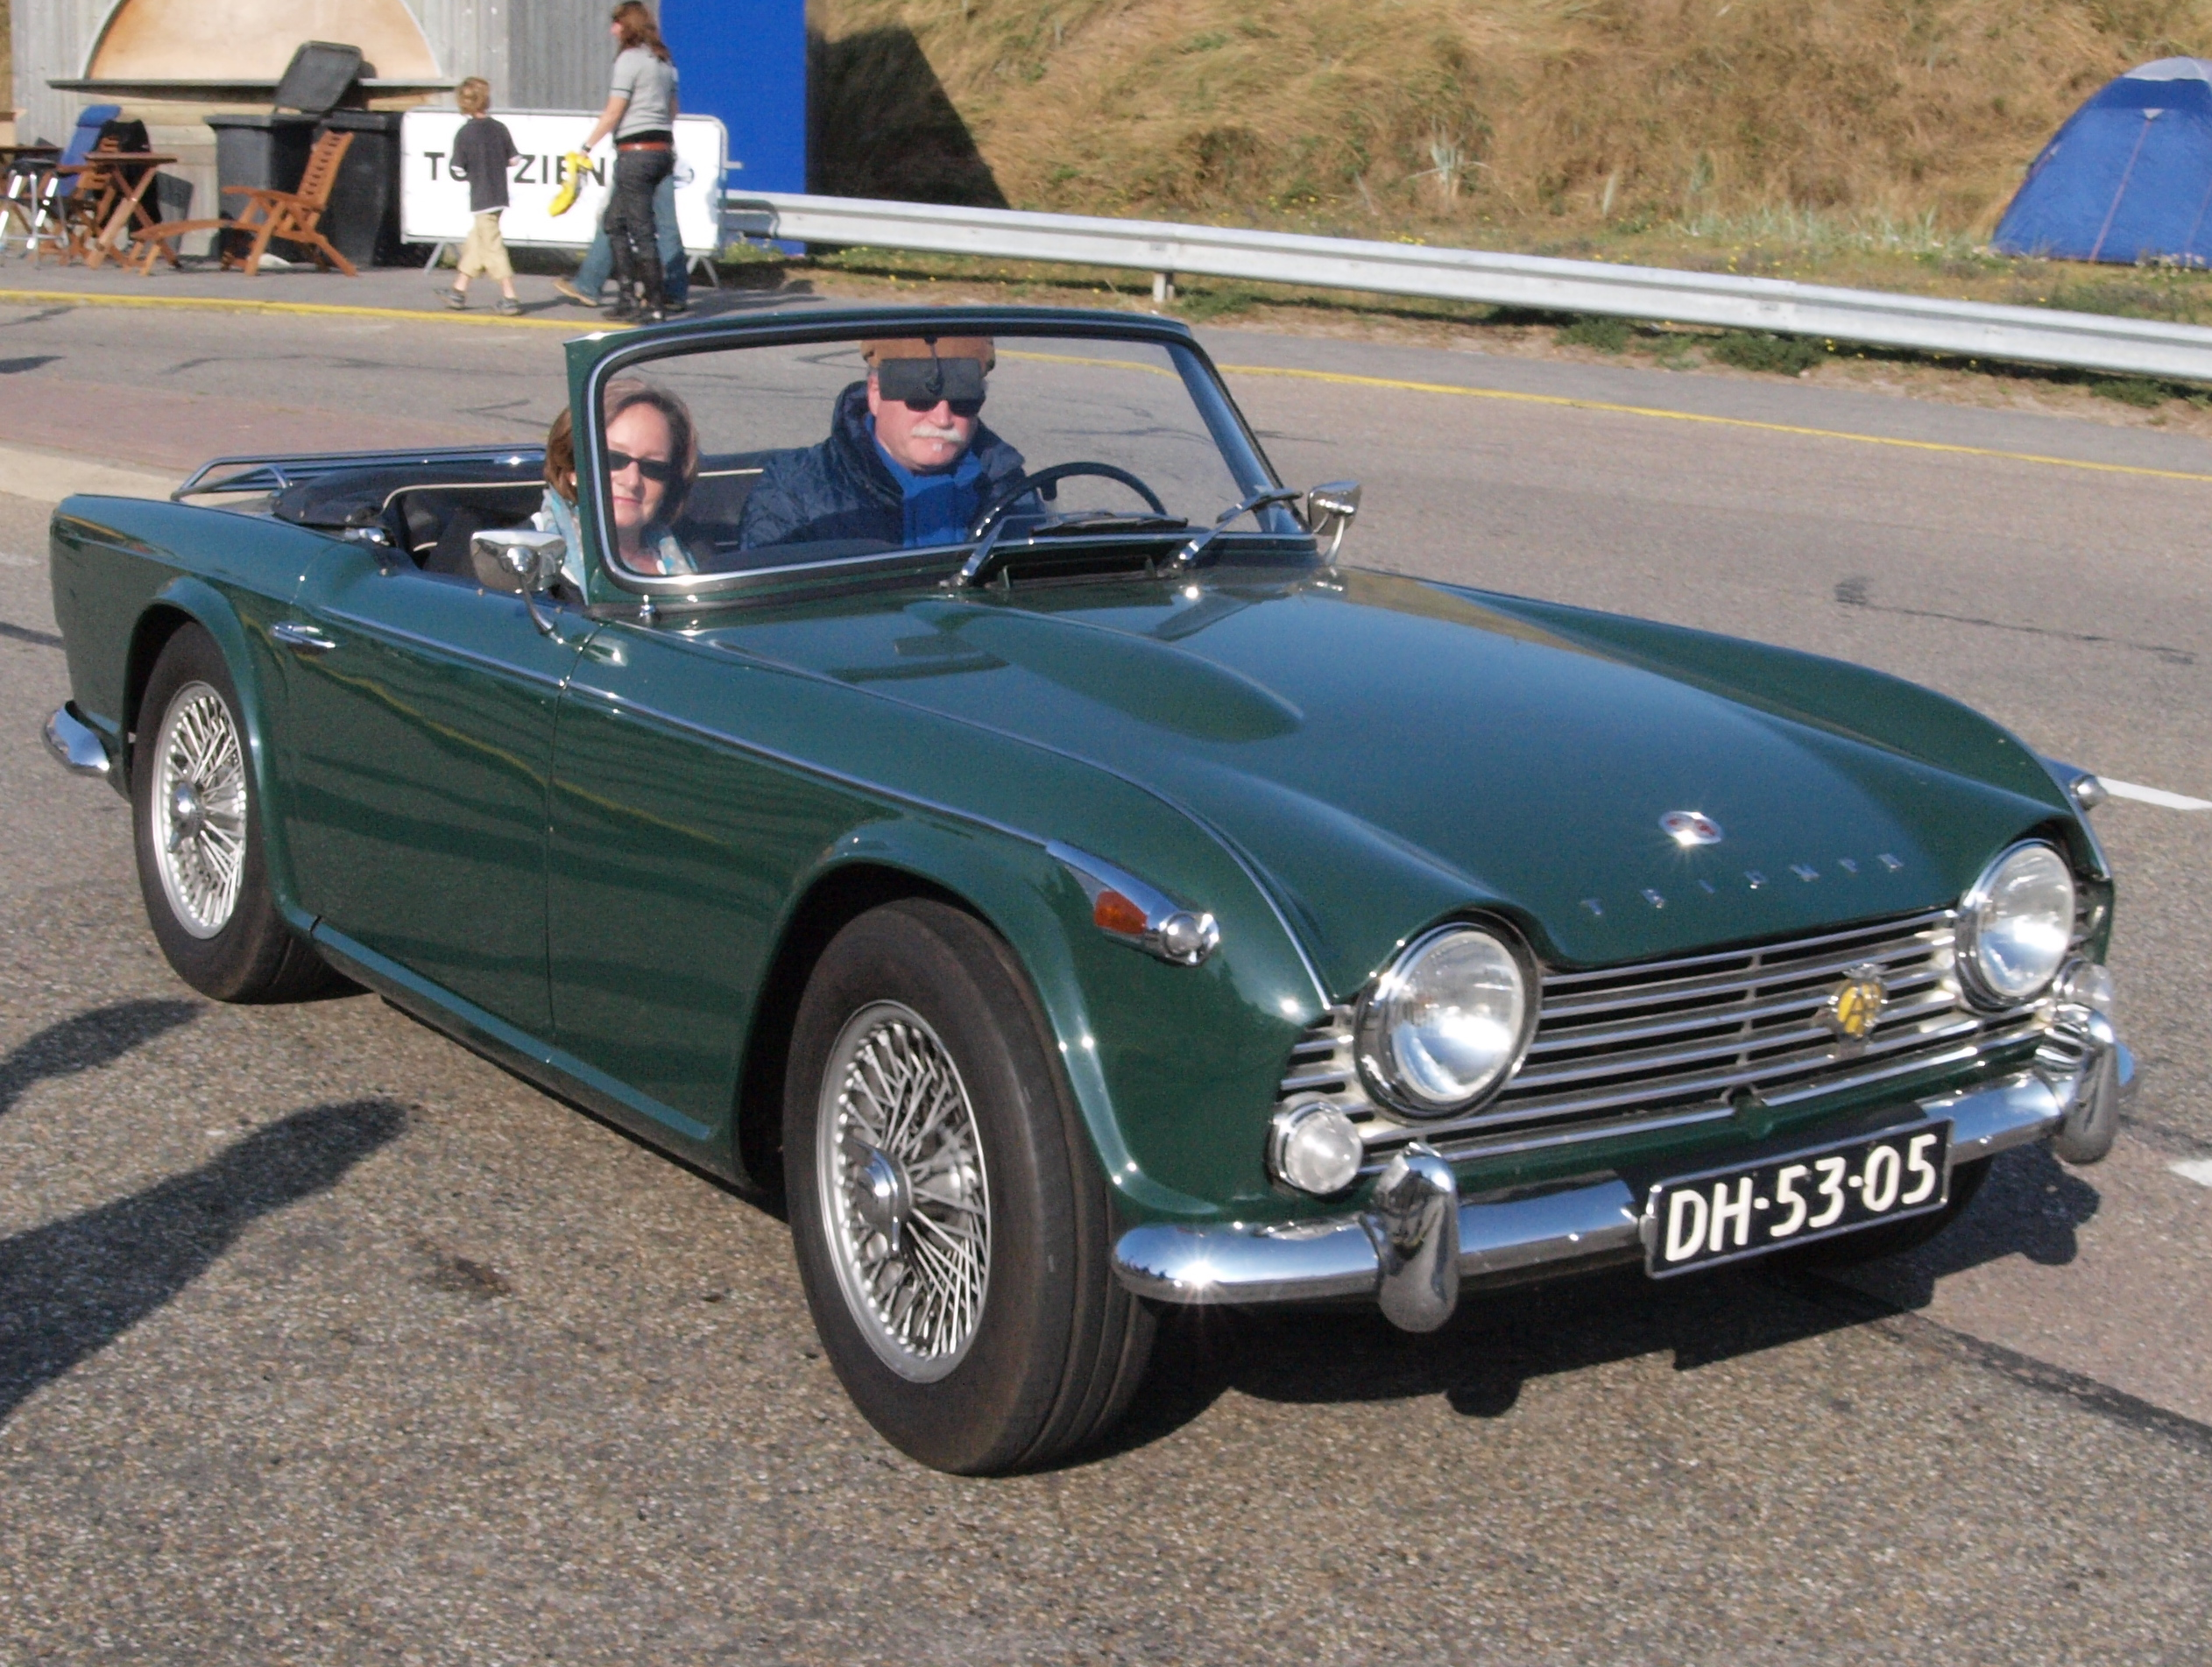 Filetriumph Tr4 Dutch Licence Registration Dh 53 05 Pic1jpg